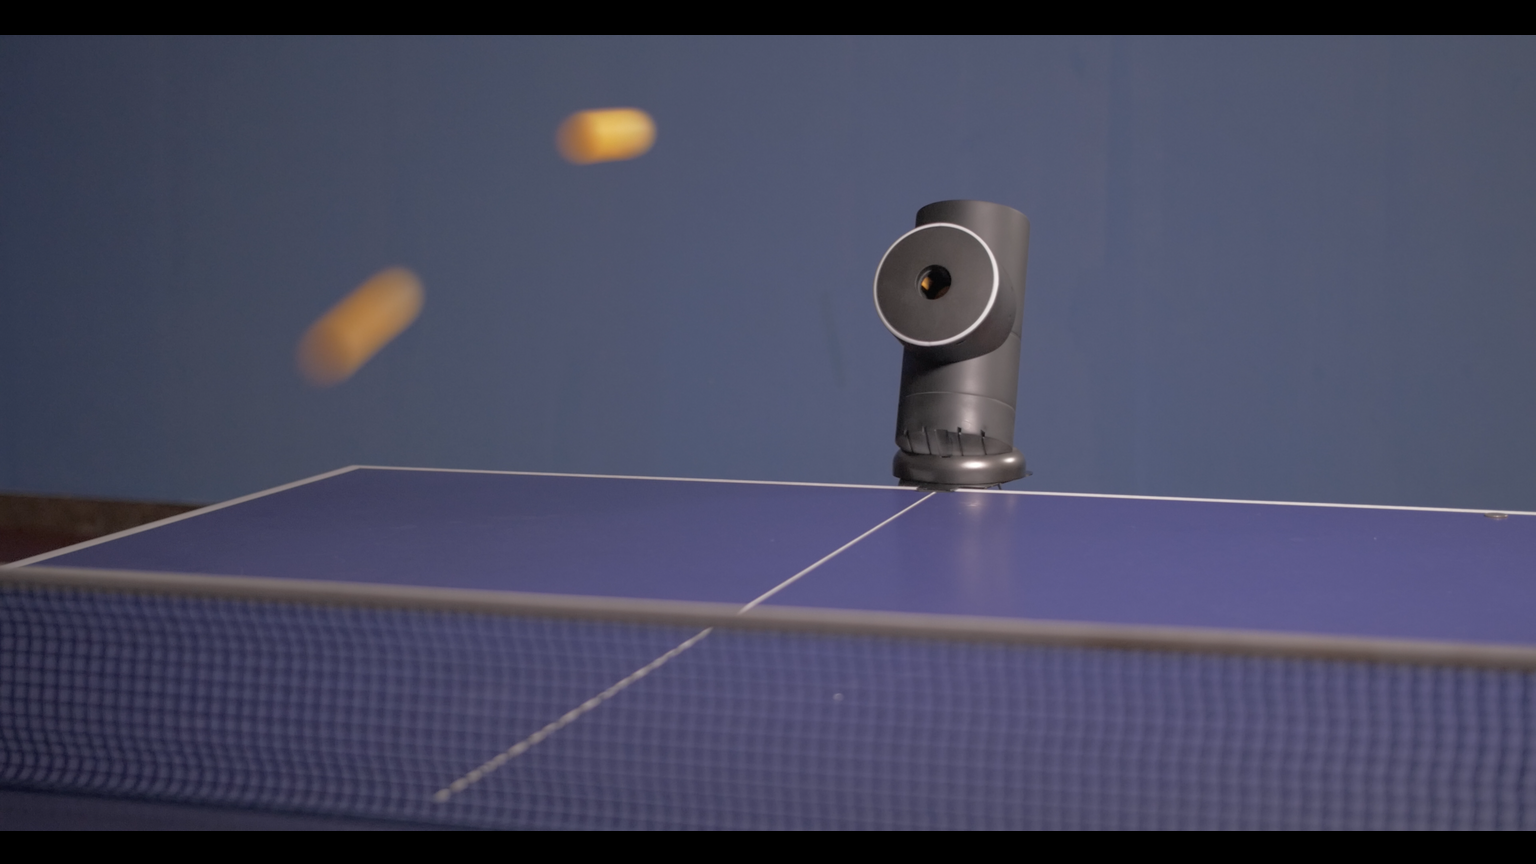 Trainerbot Anytime Anywhere Table Tennis Partner Gadget Kickstarter Table Tennis Rubber Ping Pong Table Tennis